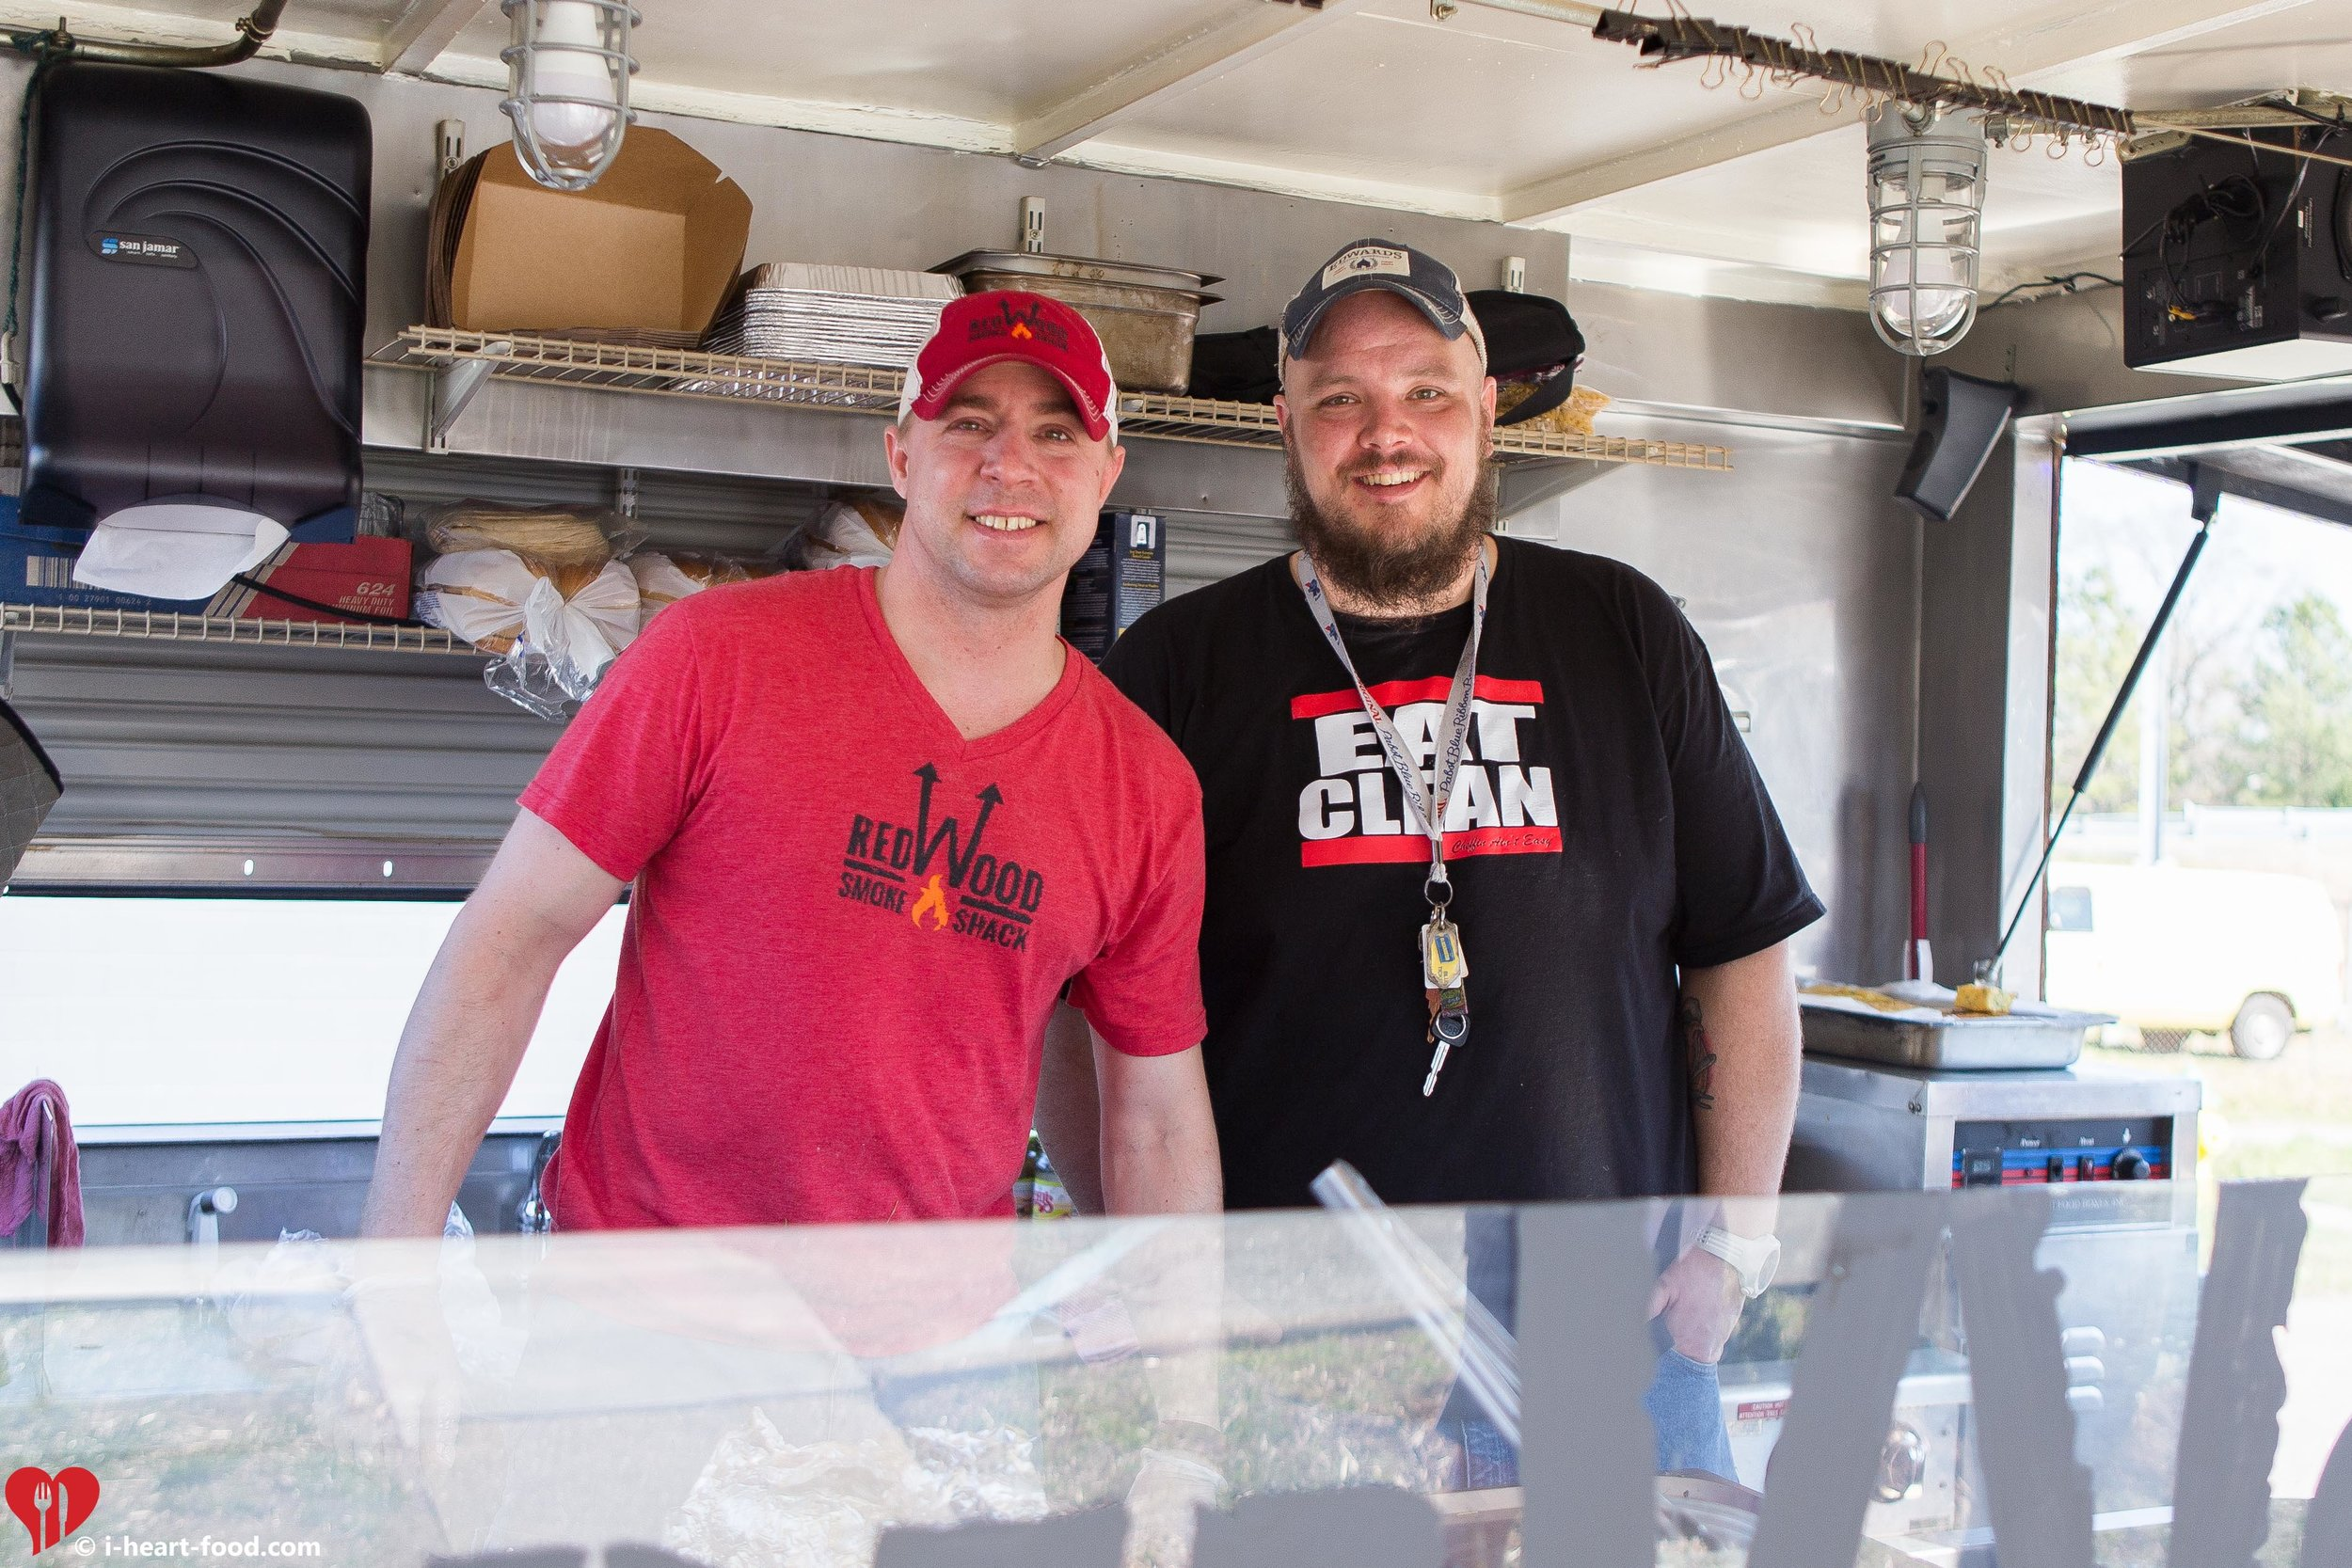 Bob Roberts (owner) was visited by  HomeGrown 's chef Nic Hagen